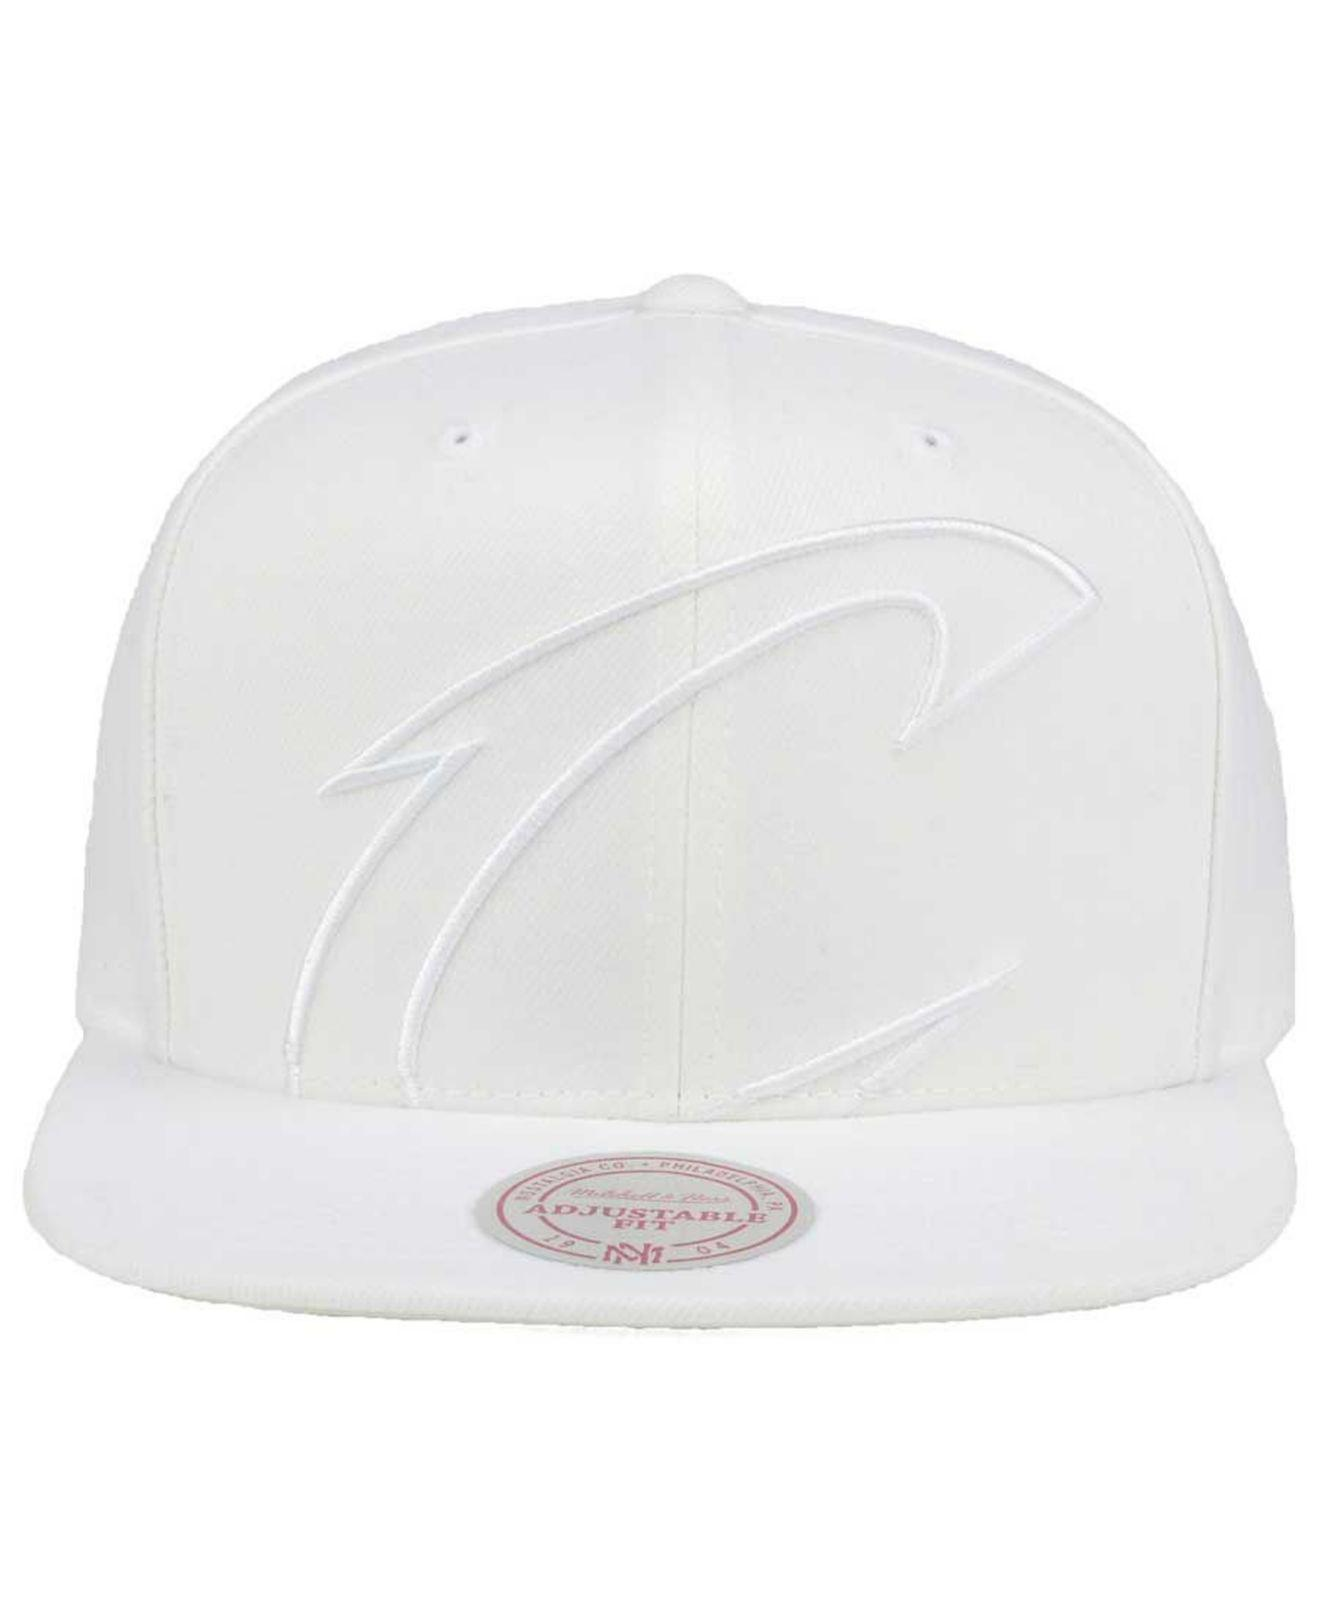 3fff2888a0308 buy lyst mitchell ness cleveland cavaliers cropped xl logo snapback cap in  white for men c9b70